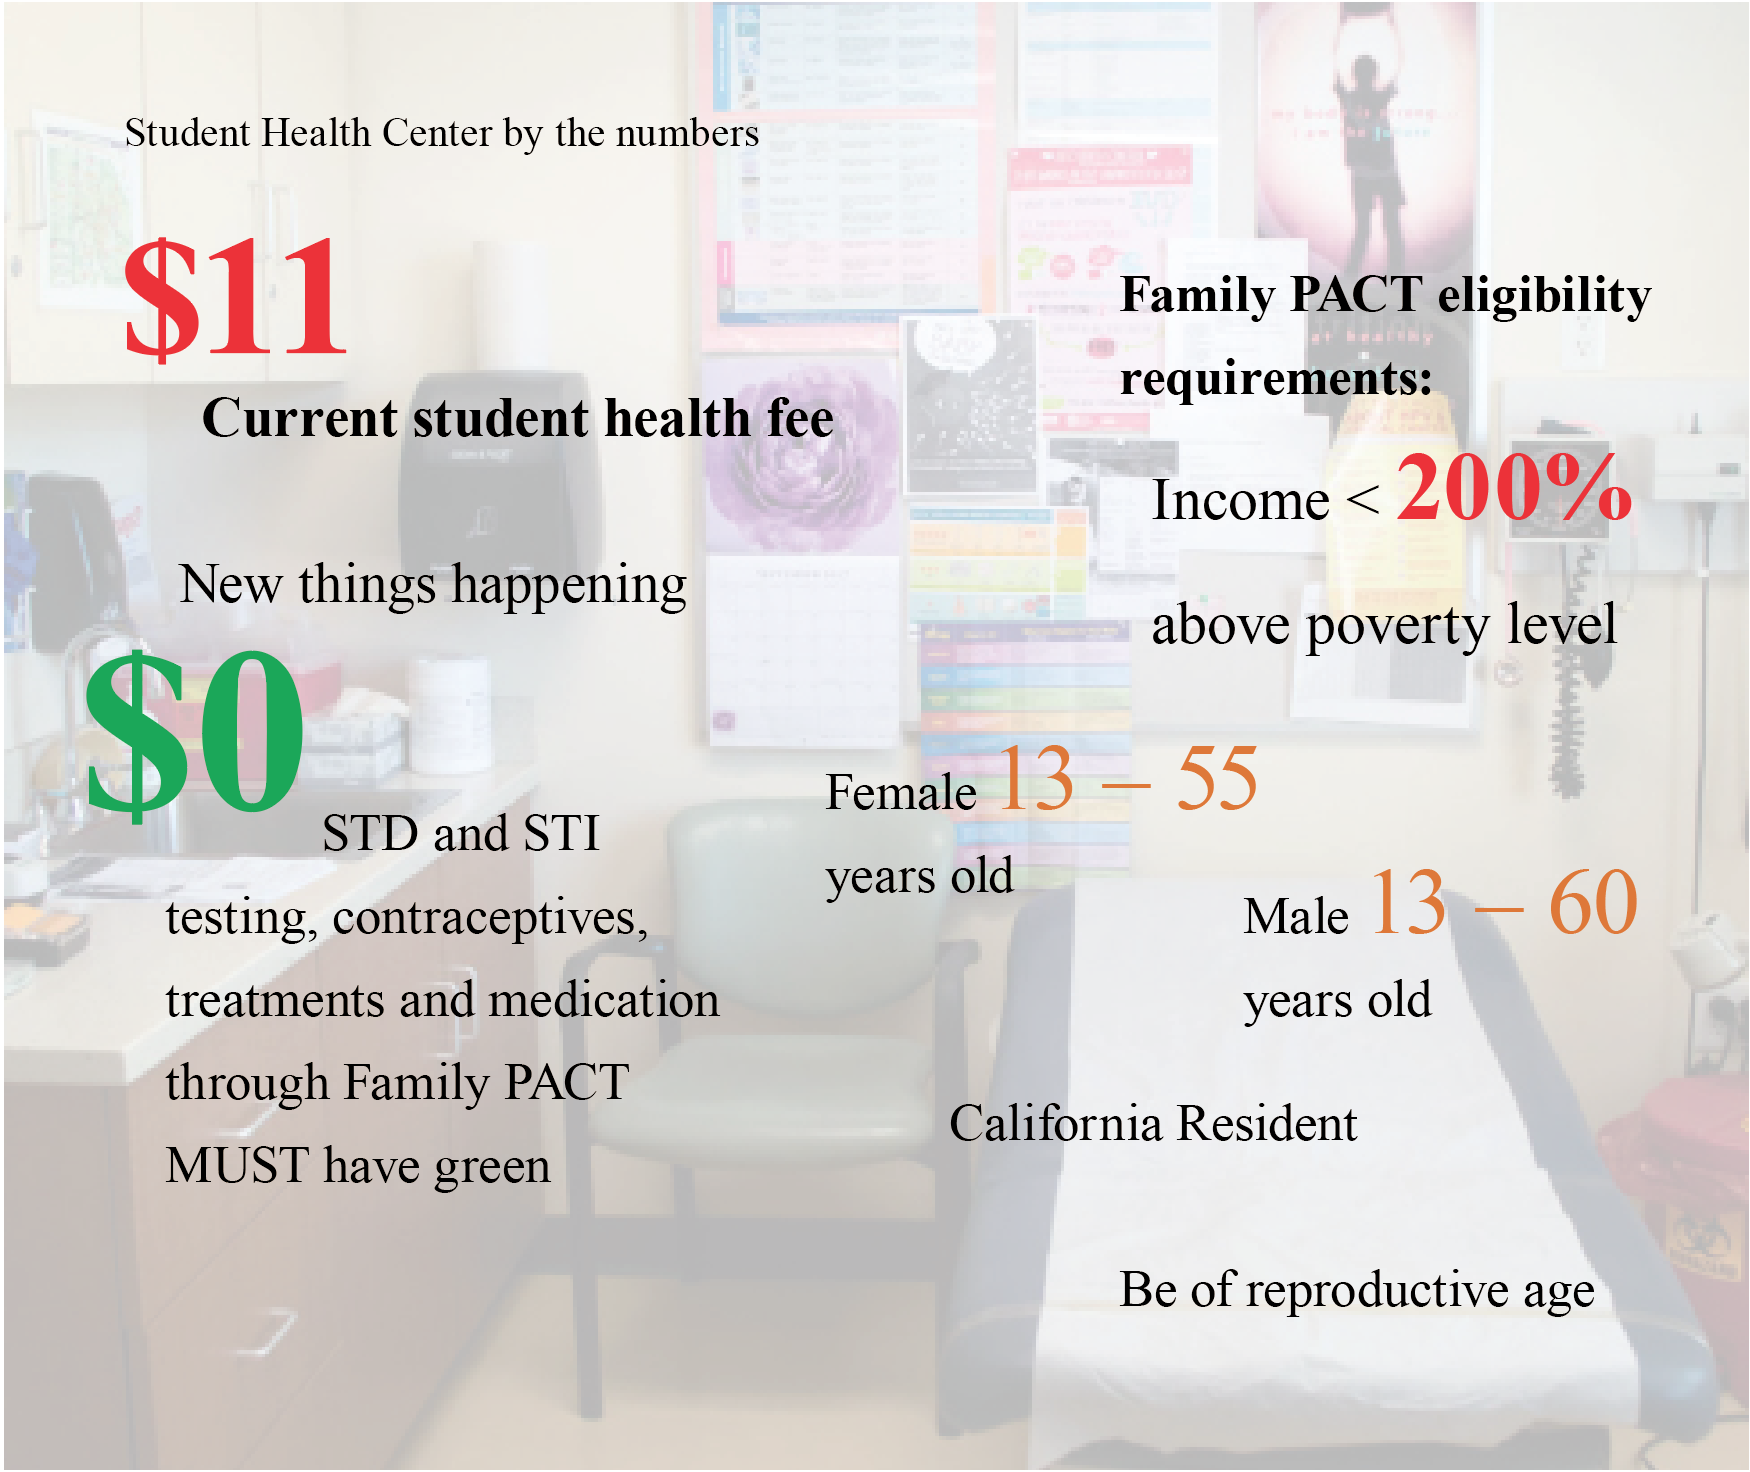 Health center makes a Family PACT